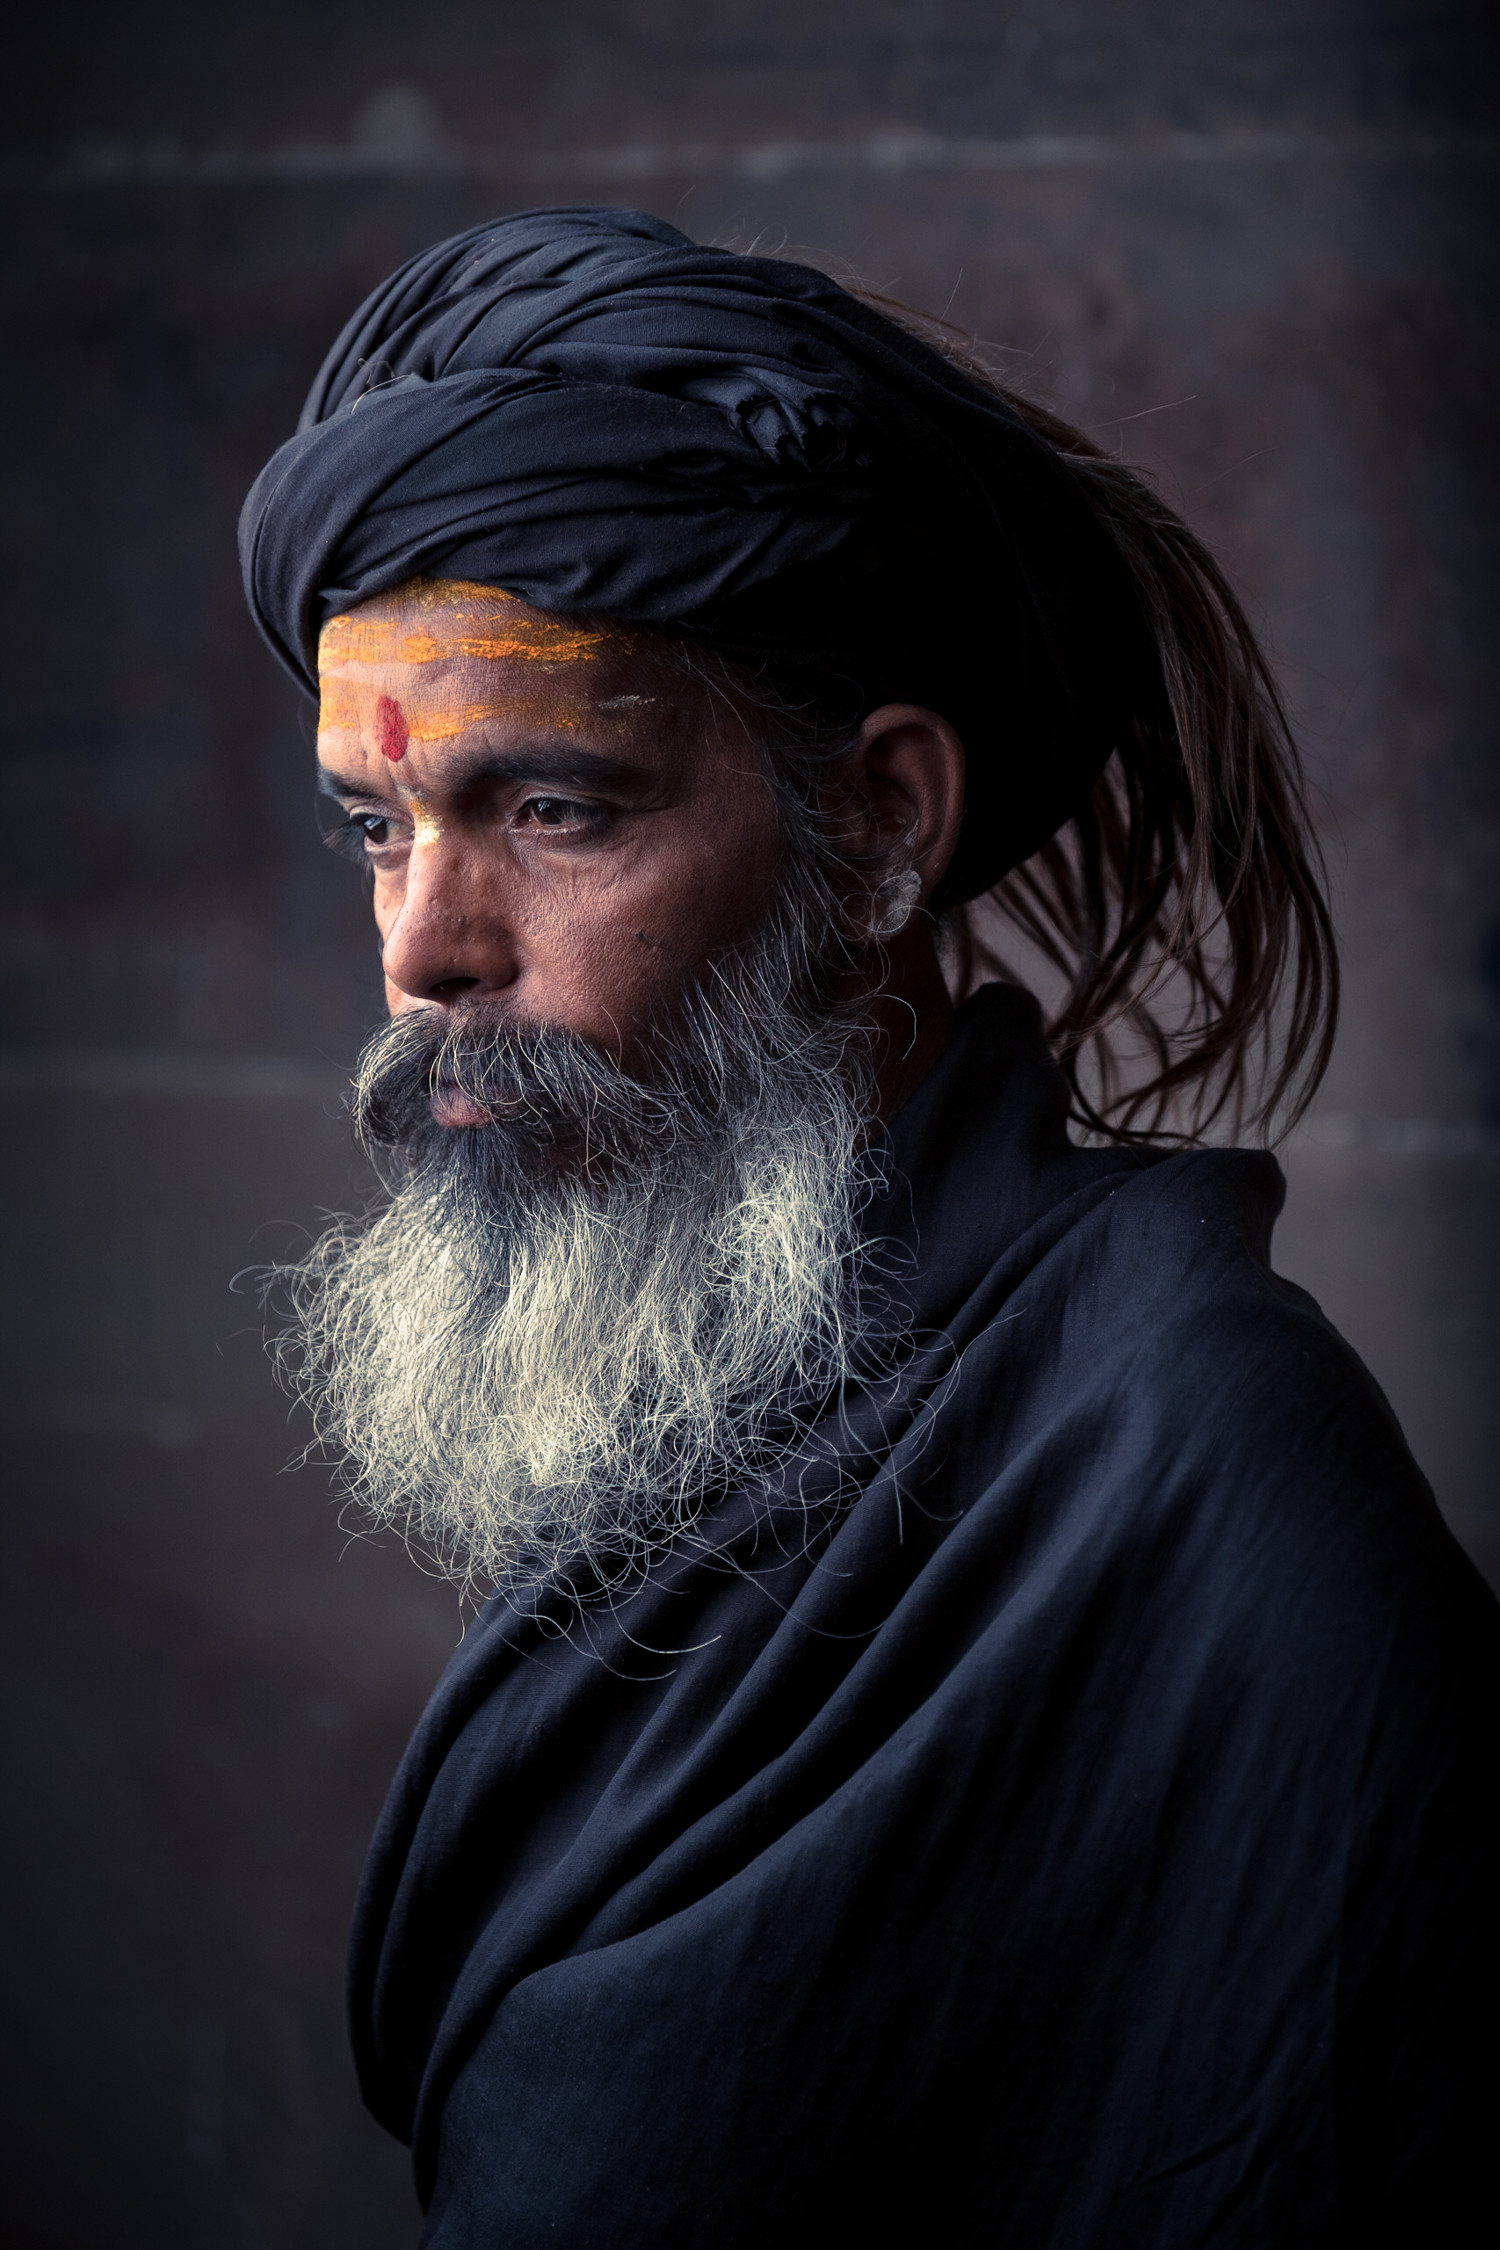 We used a so-called 'Short Lighting' light setup here because it works great with character faces like this sadhu's.